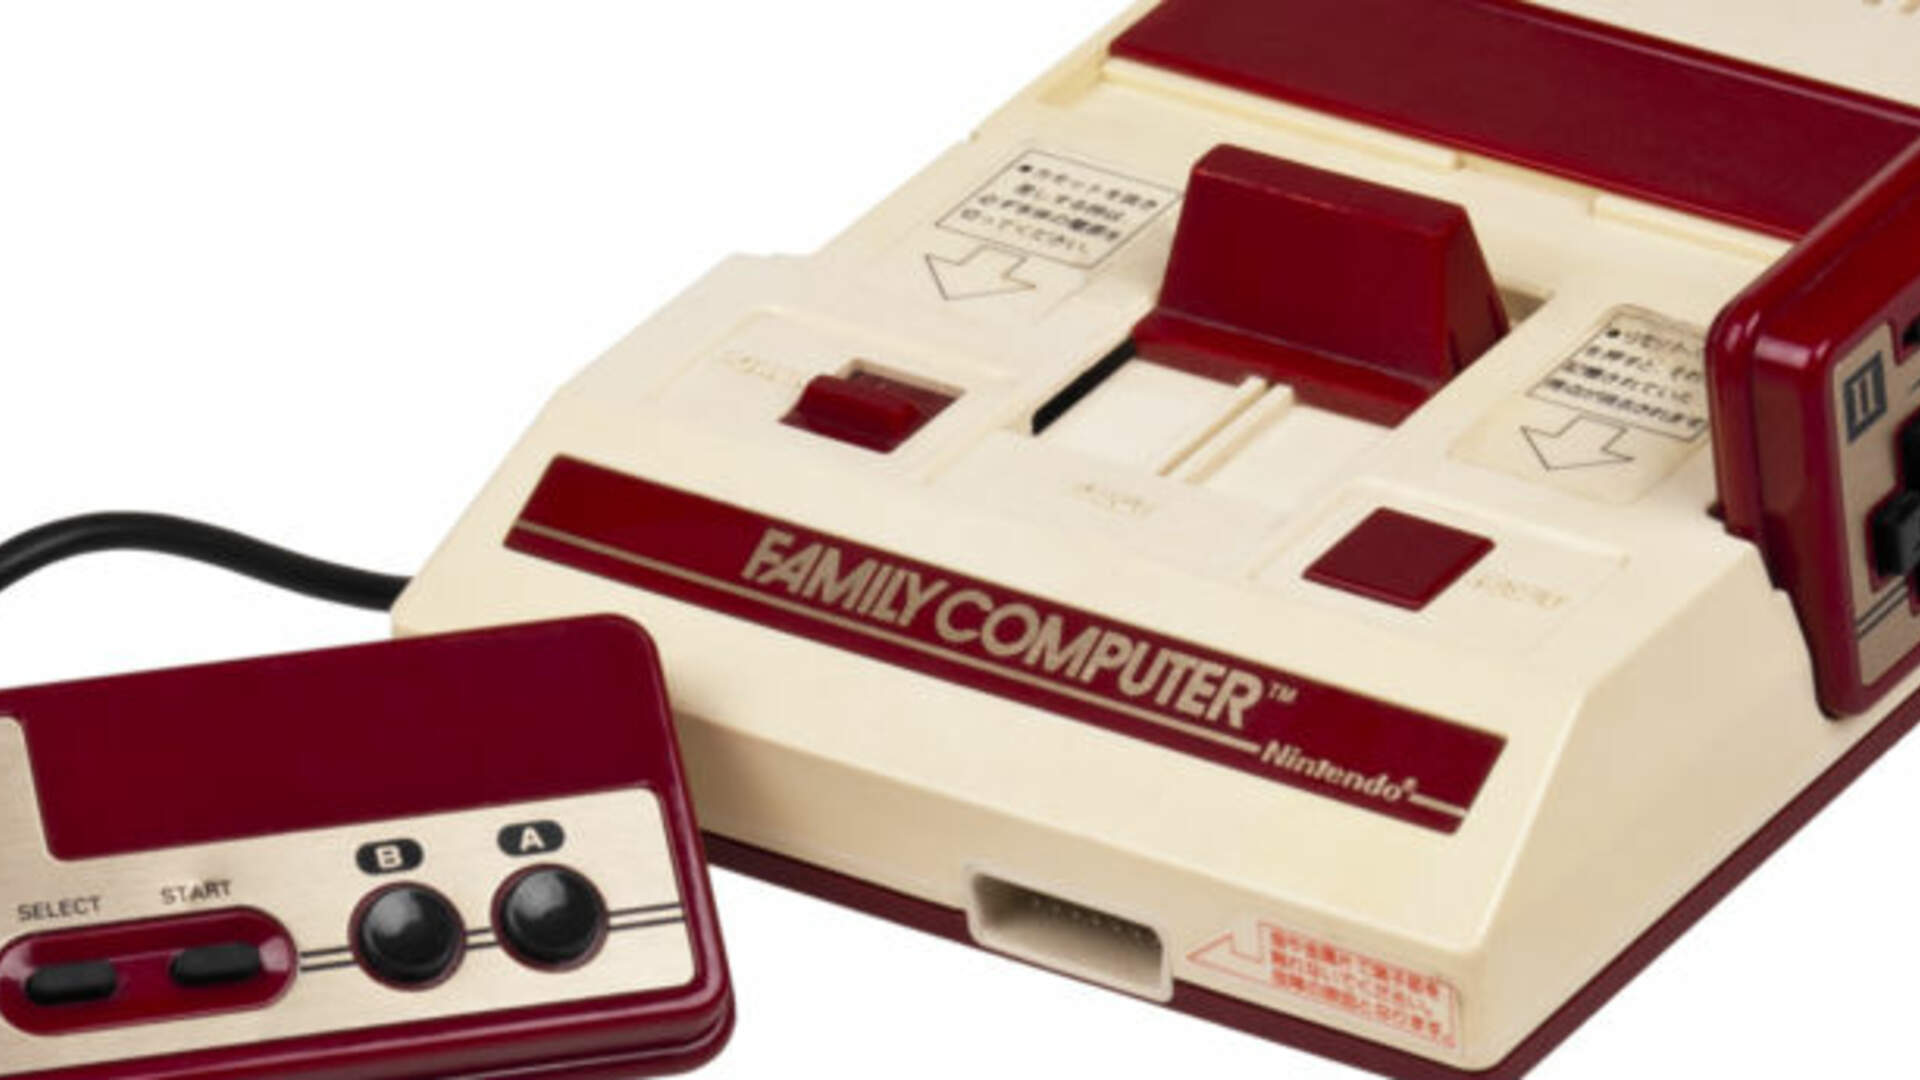 The Famicom Celebrates Its 35th Anniversary: The Console That Changed Gaming Forever